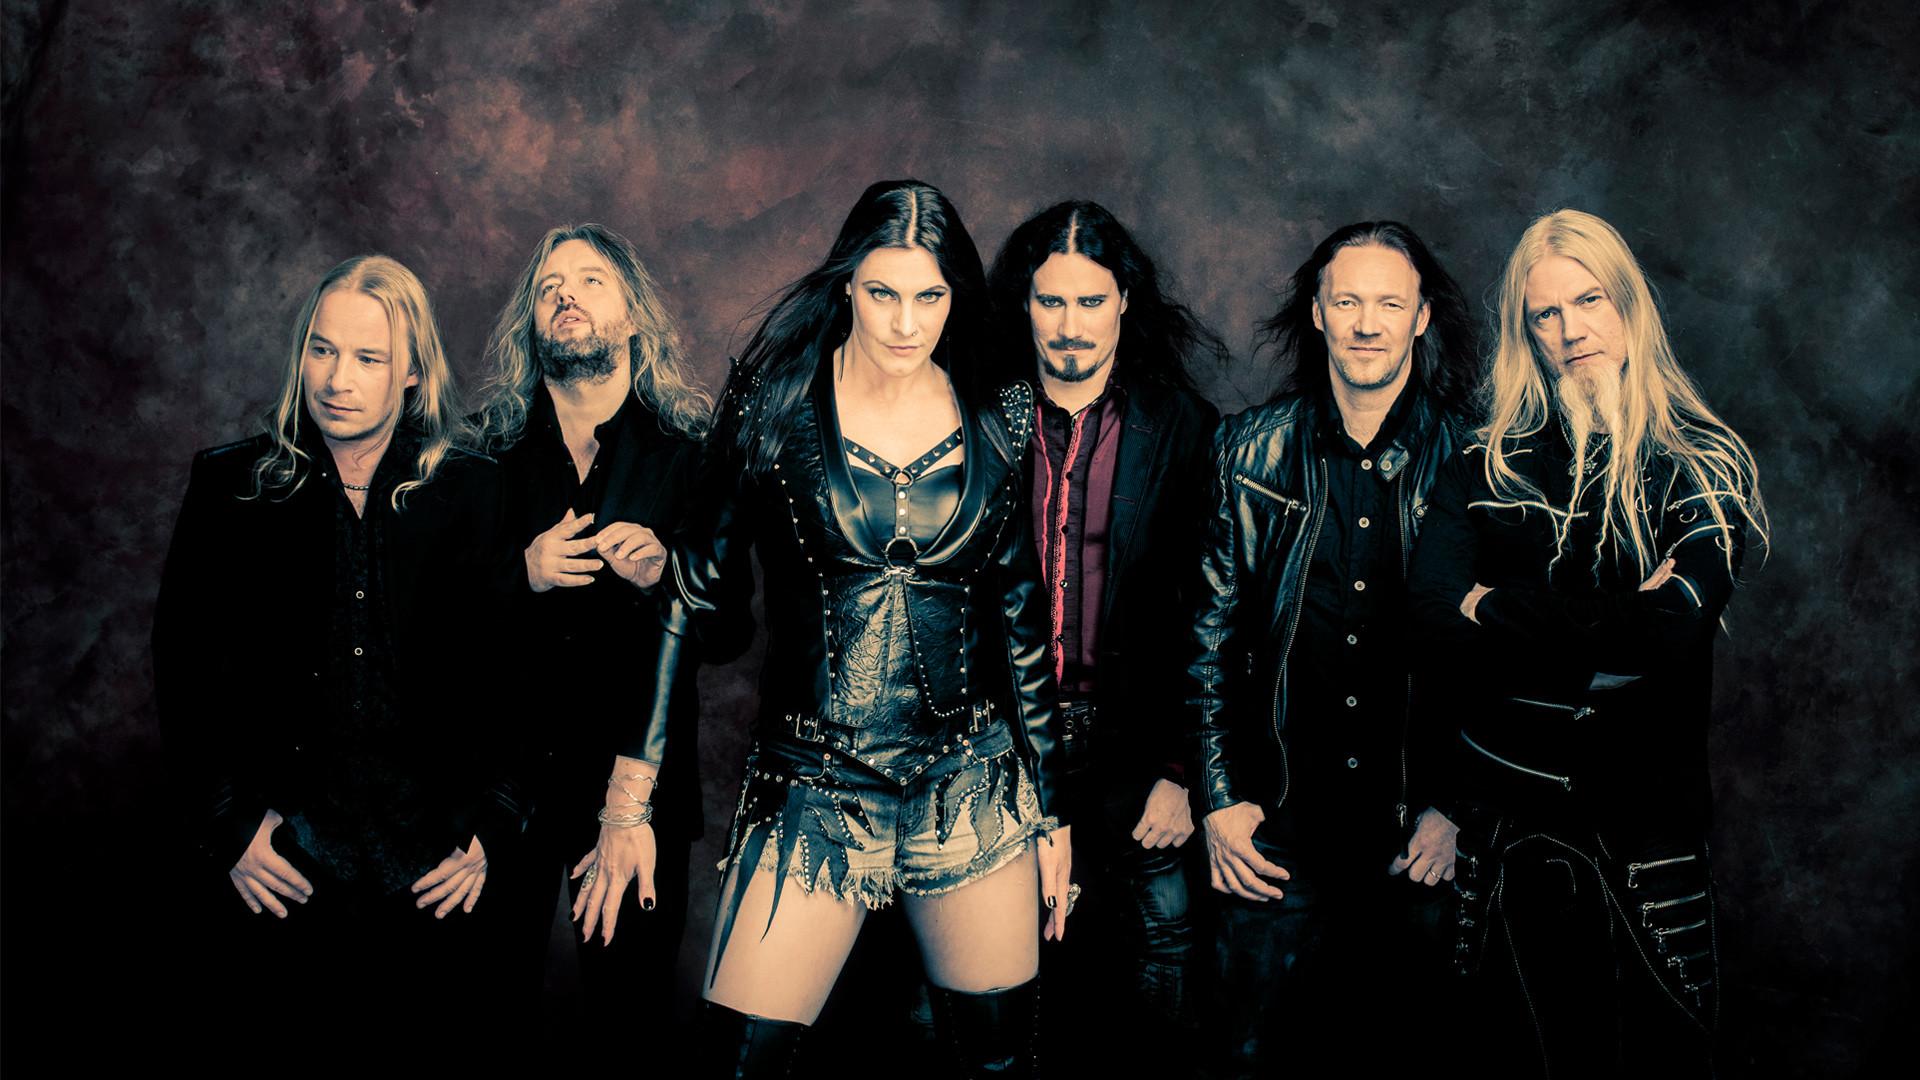 1920x1080 Nightwish Music Band Wallpaper - DreamLoveWallpapers